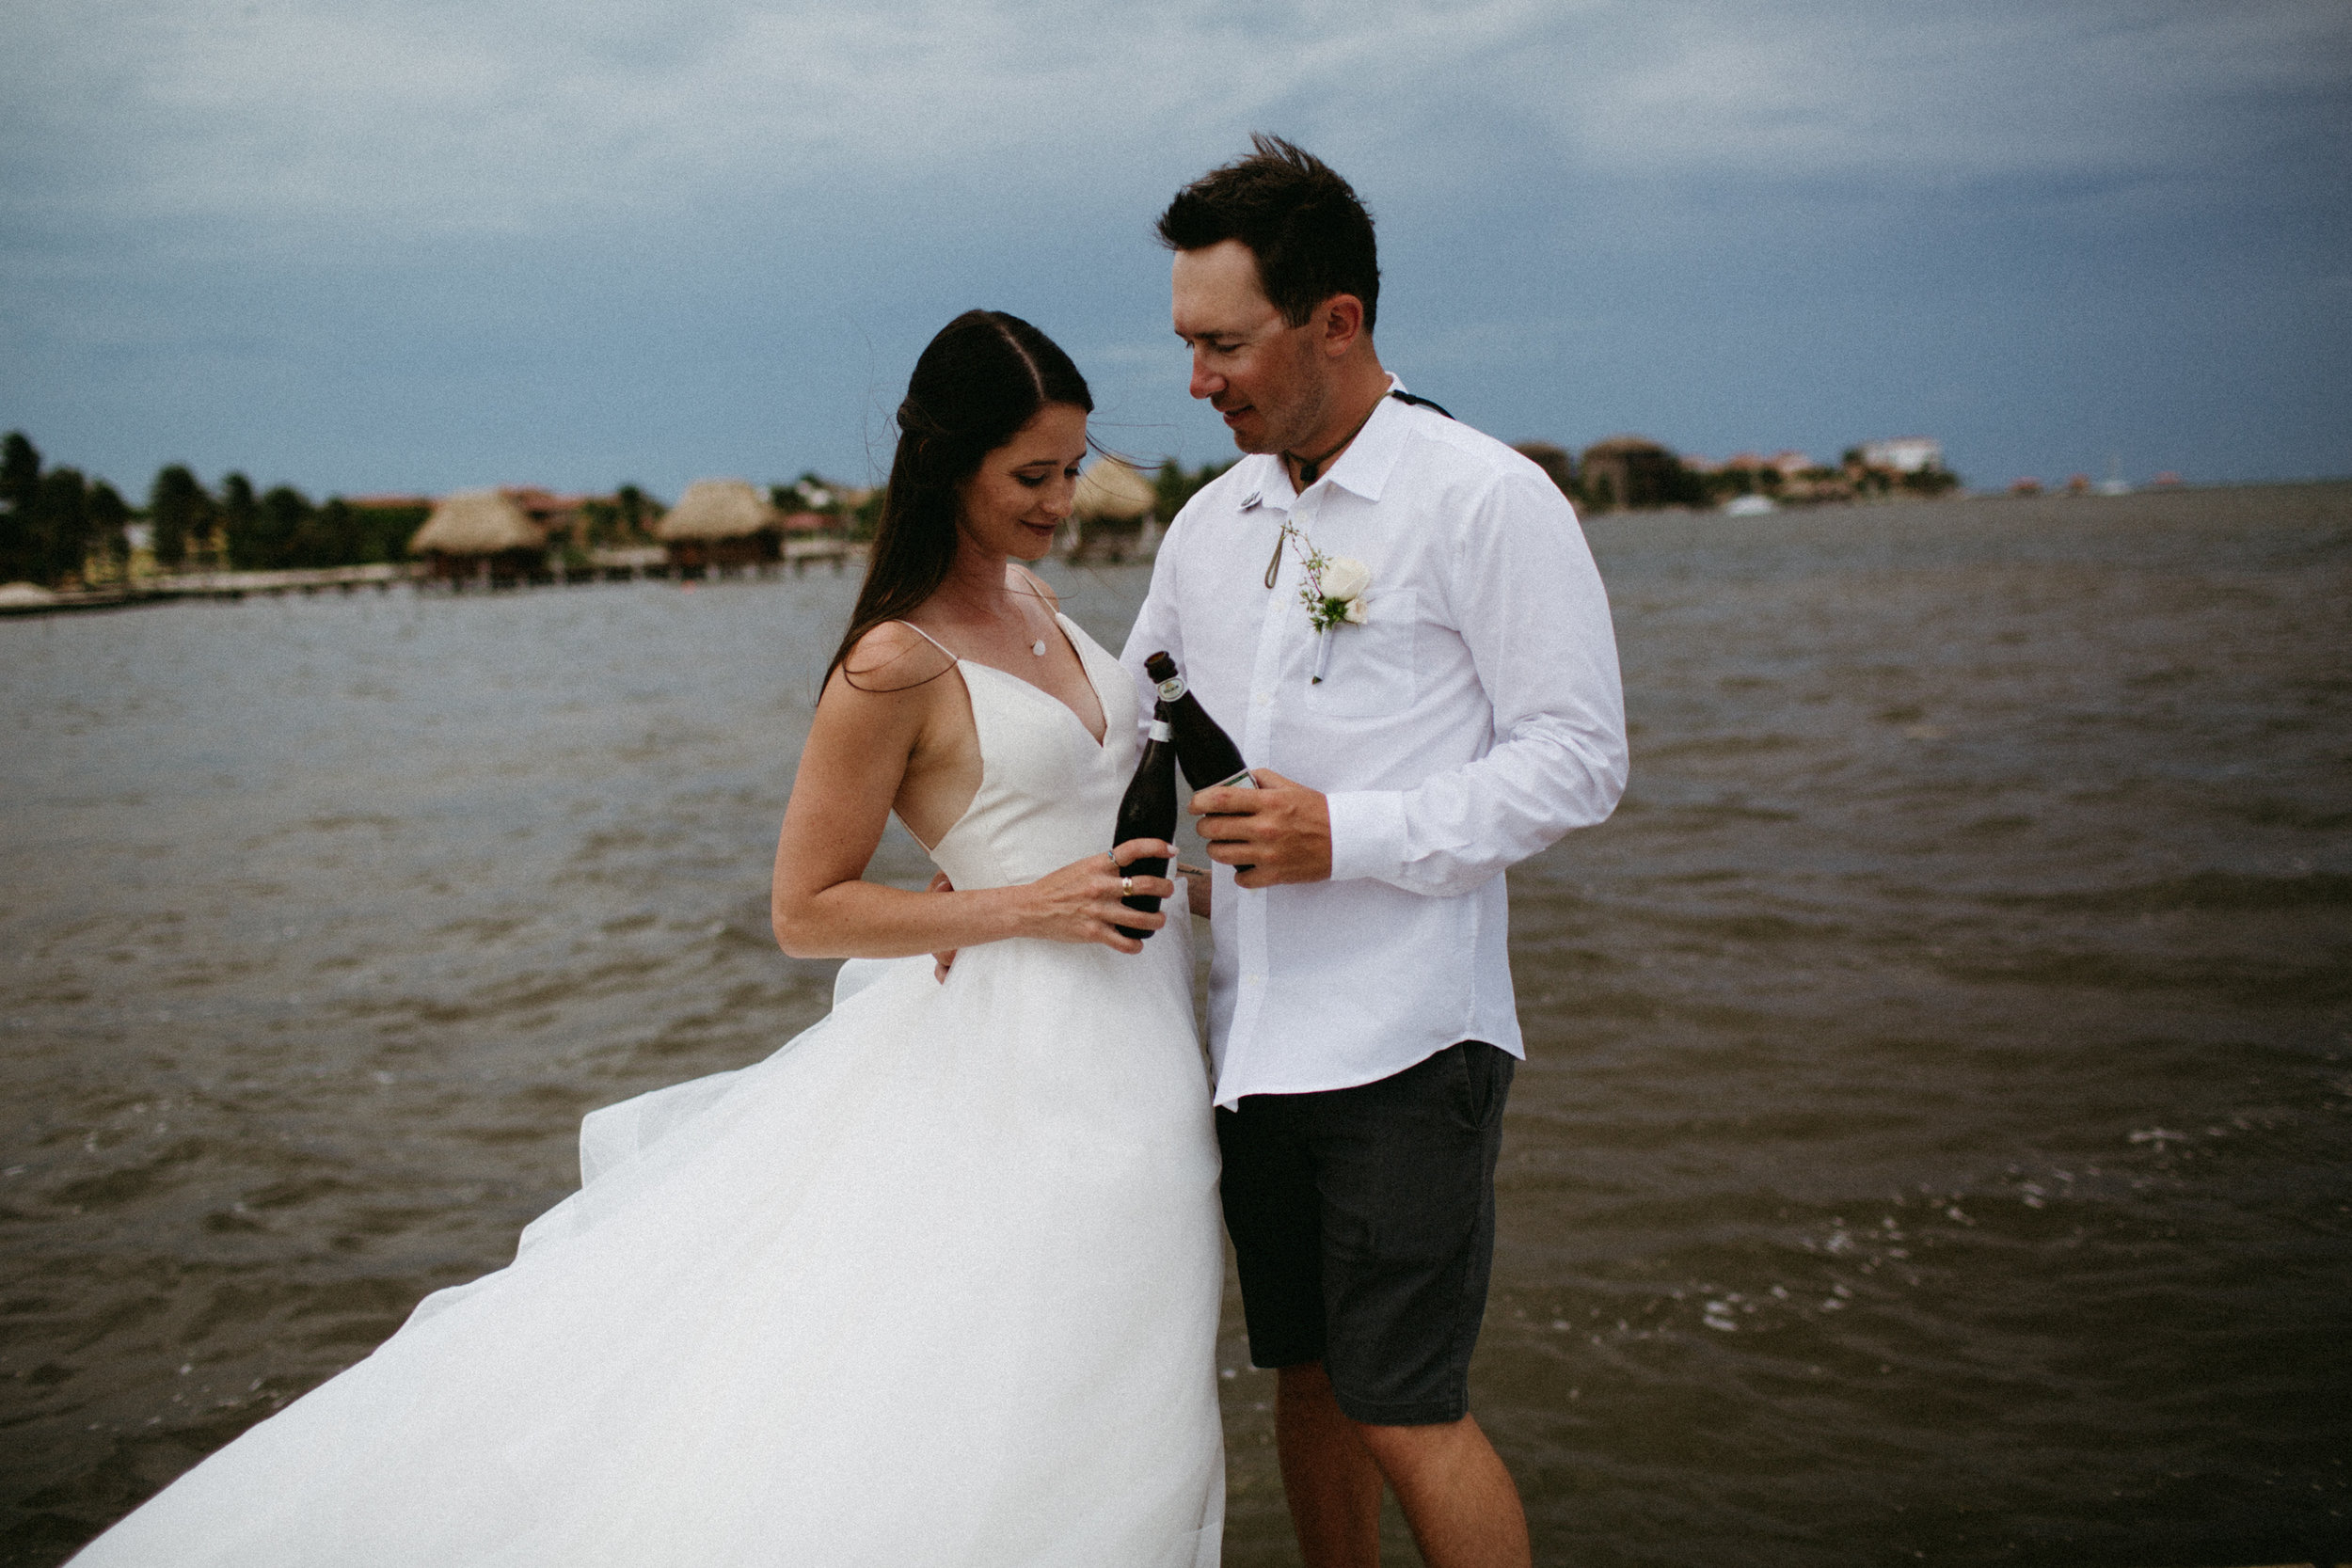 san-pescador-belize-wedding-christinemariephoto-j-k-43.jpg